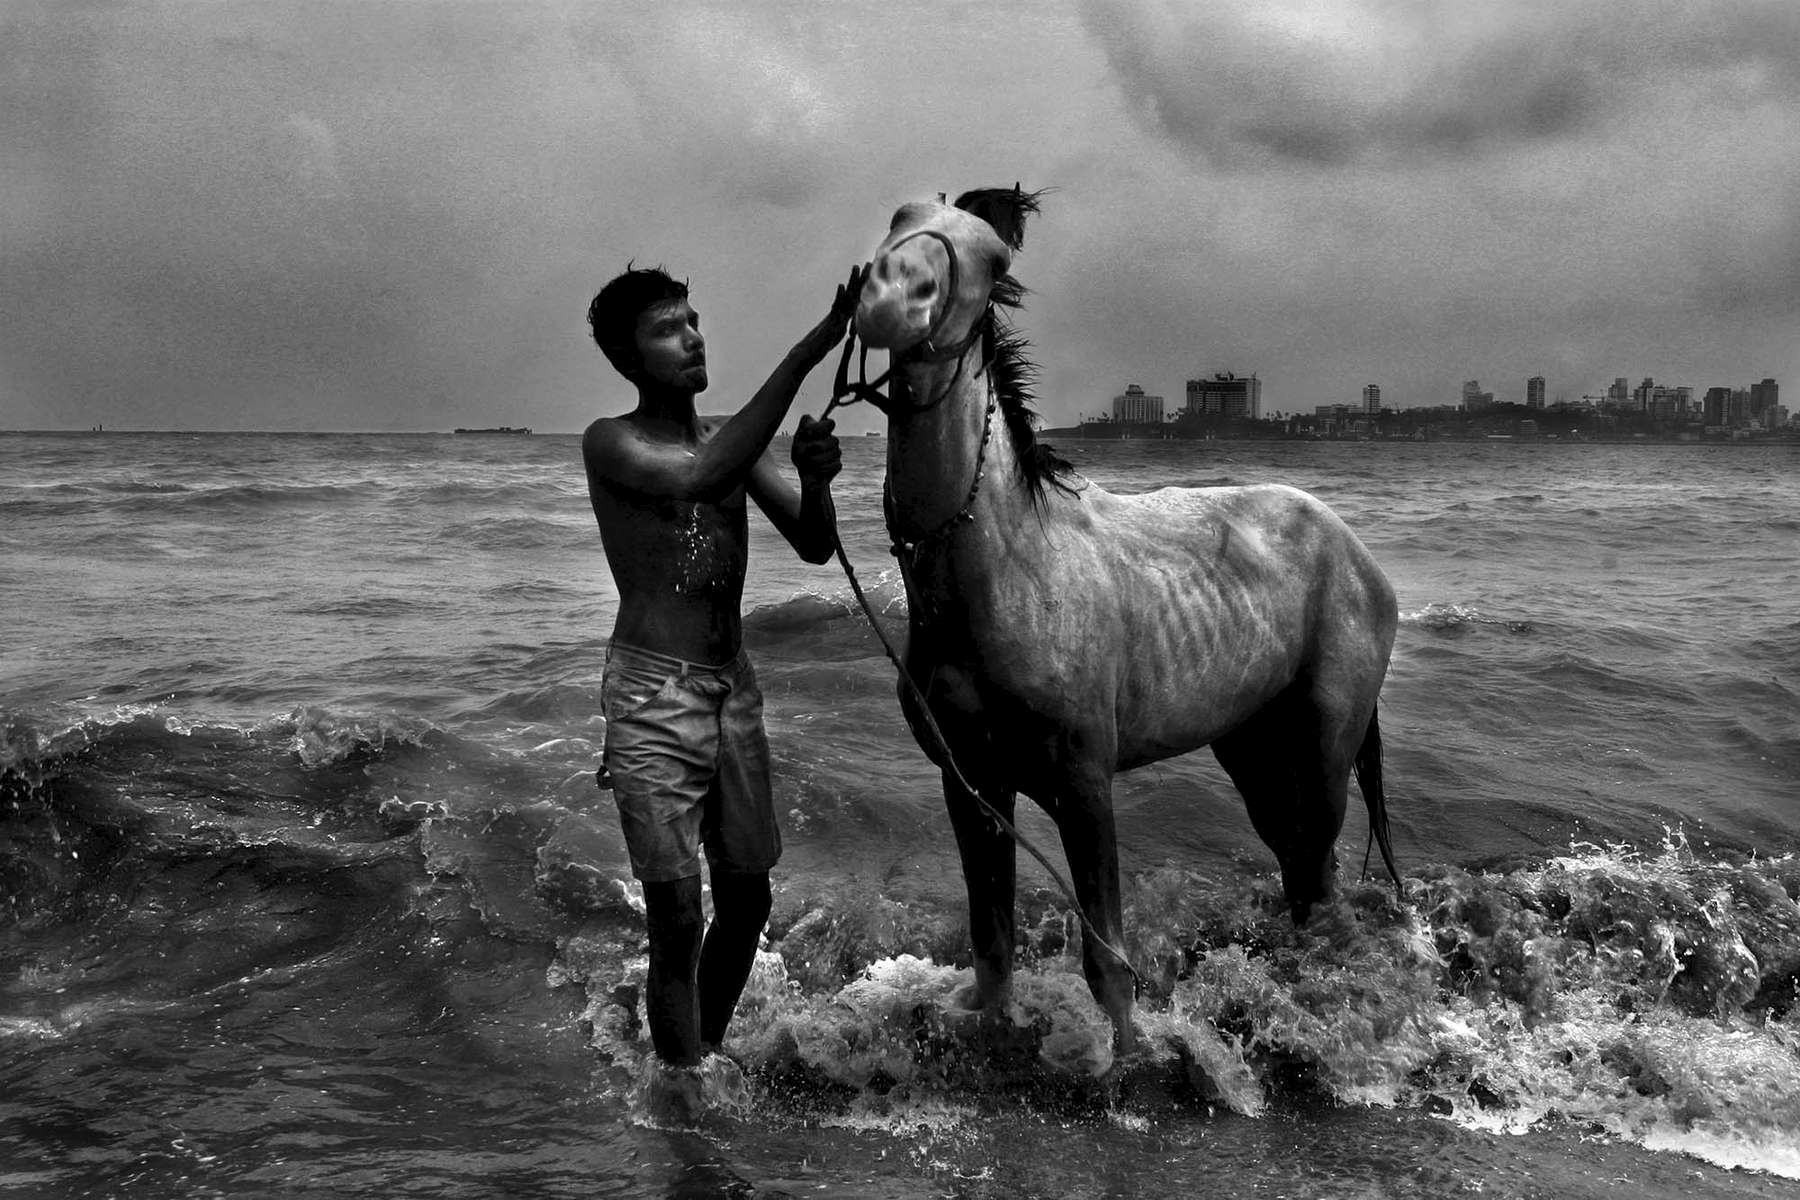 A man washes his horse in the Arabian Sea in Bombay, India. He uses his horse to give rides along the sea.